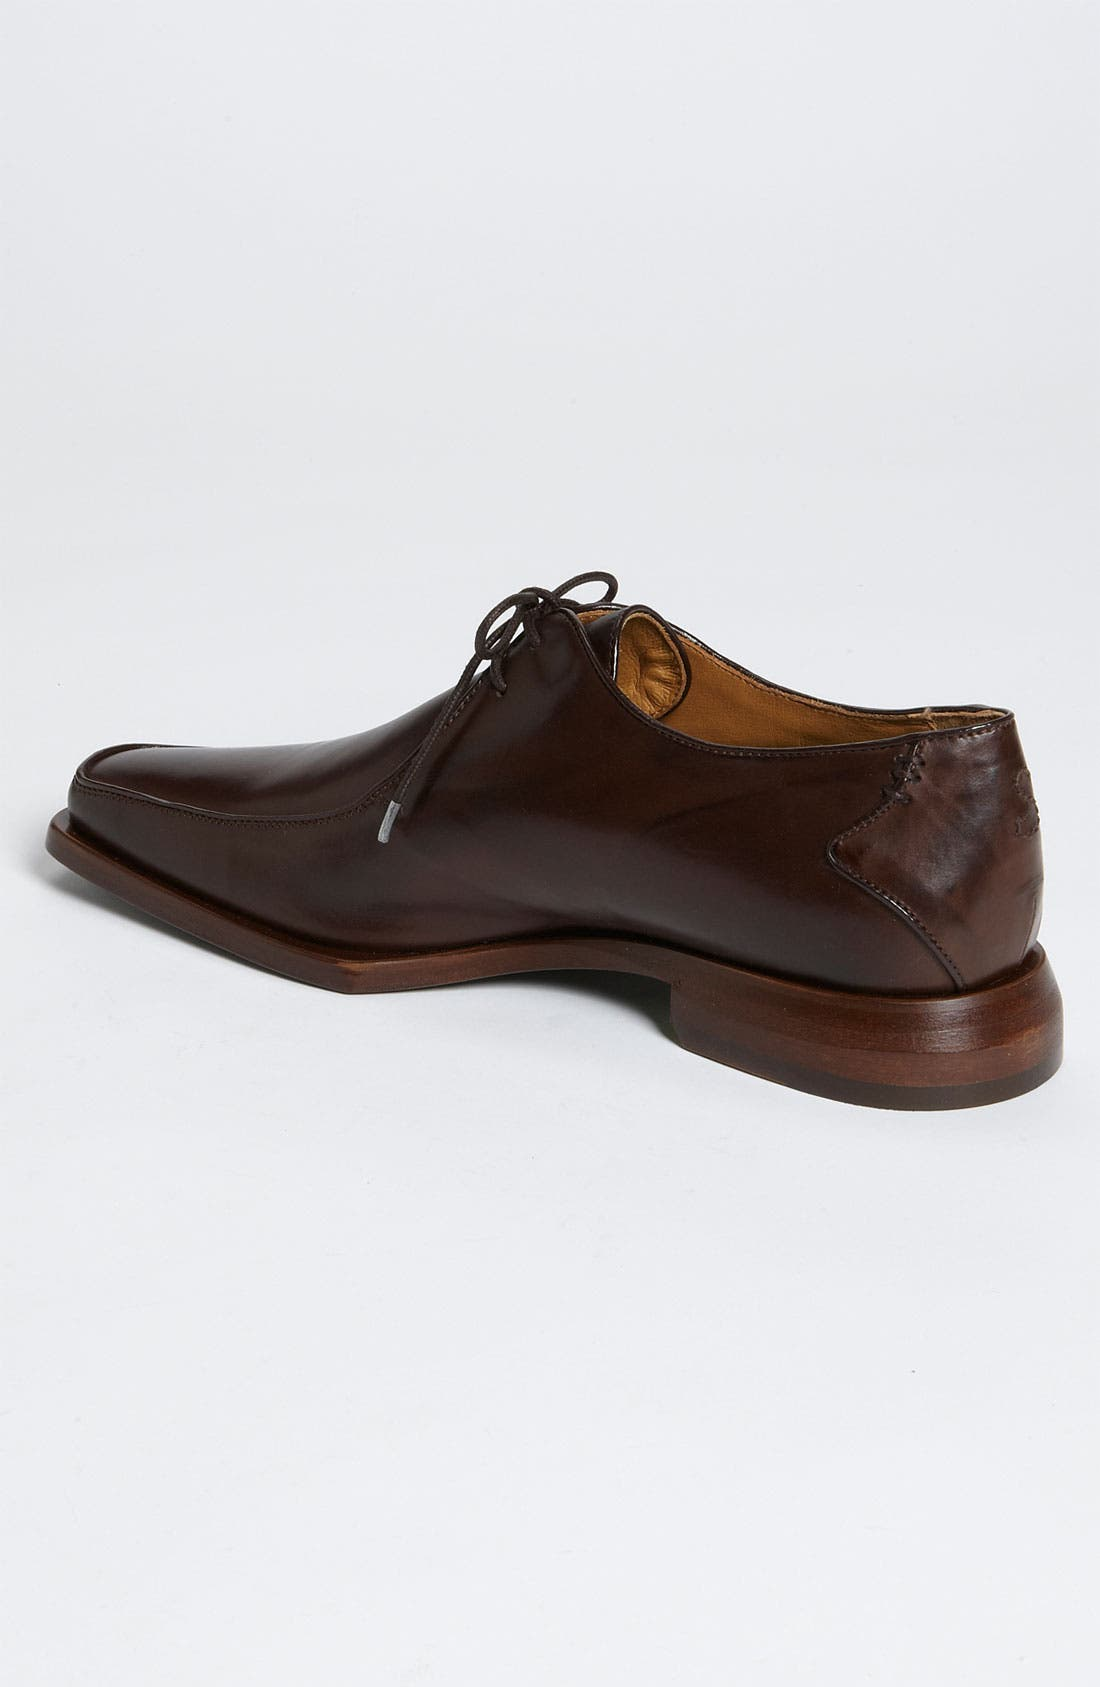 Alternate Image 2  - Oliver Sweeney 'Holman' Apron Toe Oxford